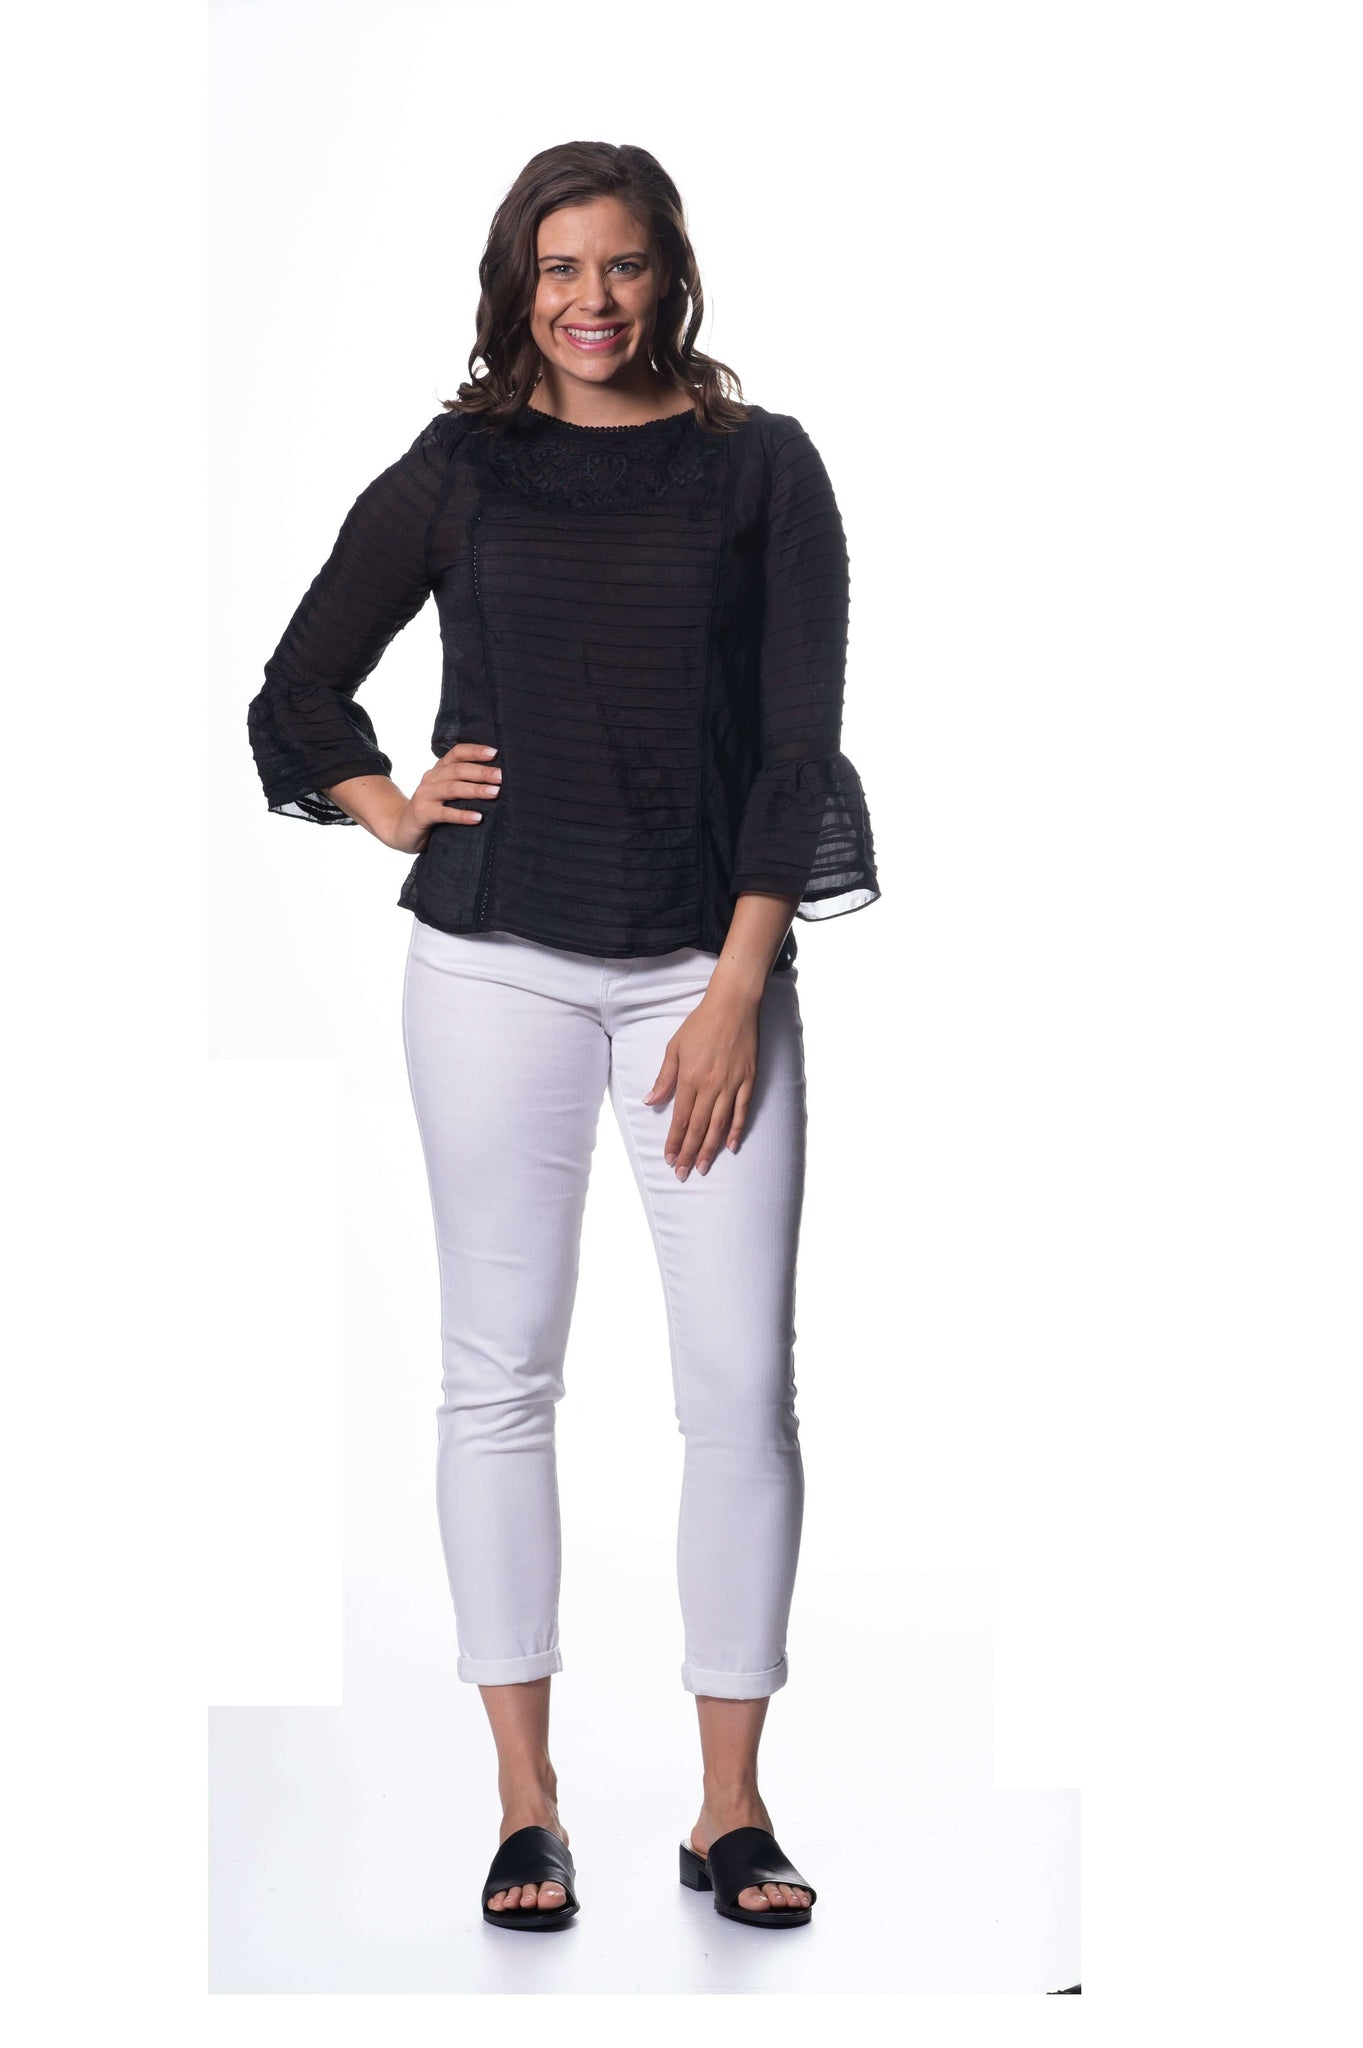 S1836389 - Vicose Crepe Long Sleeve Top Black